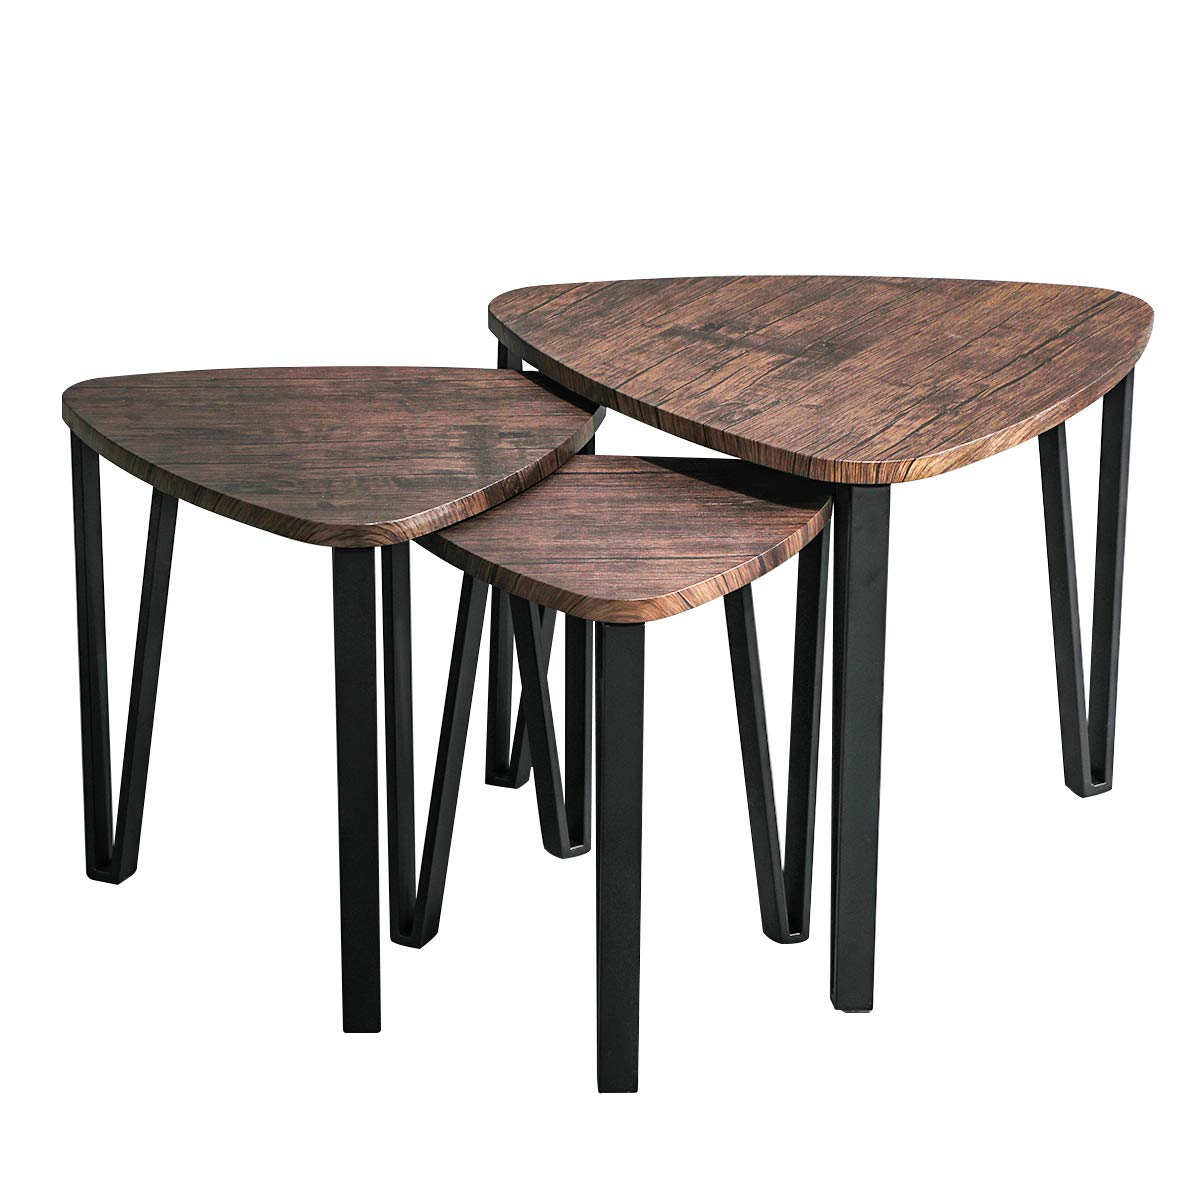 Industrial Nesting-Tables Living Room Coffee Table Sets of 3 Stacking End Side Tables Nightstands Vintage Night Tables for Bedroom Home Office Telephone Table,Brown-CAS020 by Coavas